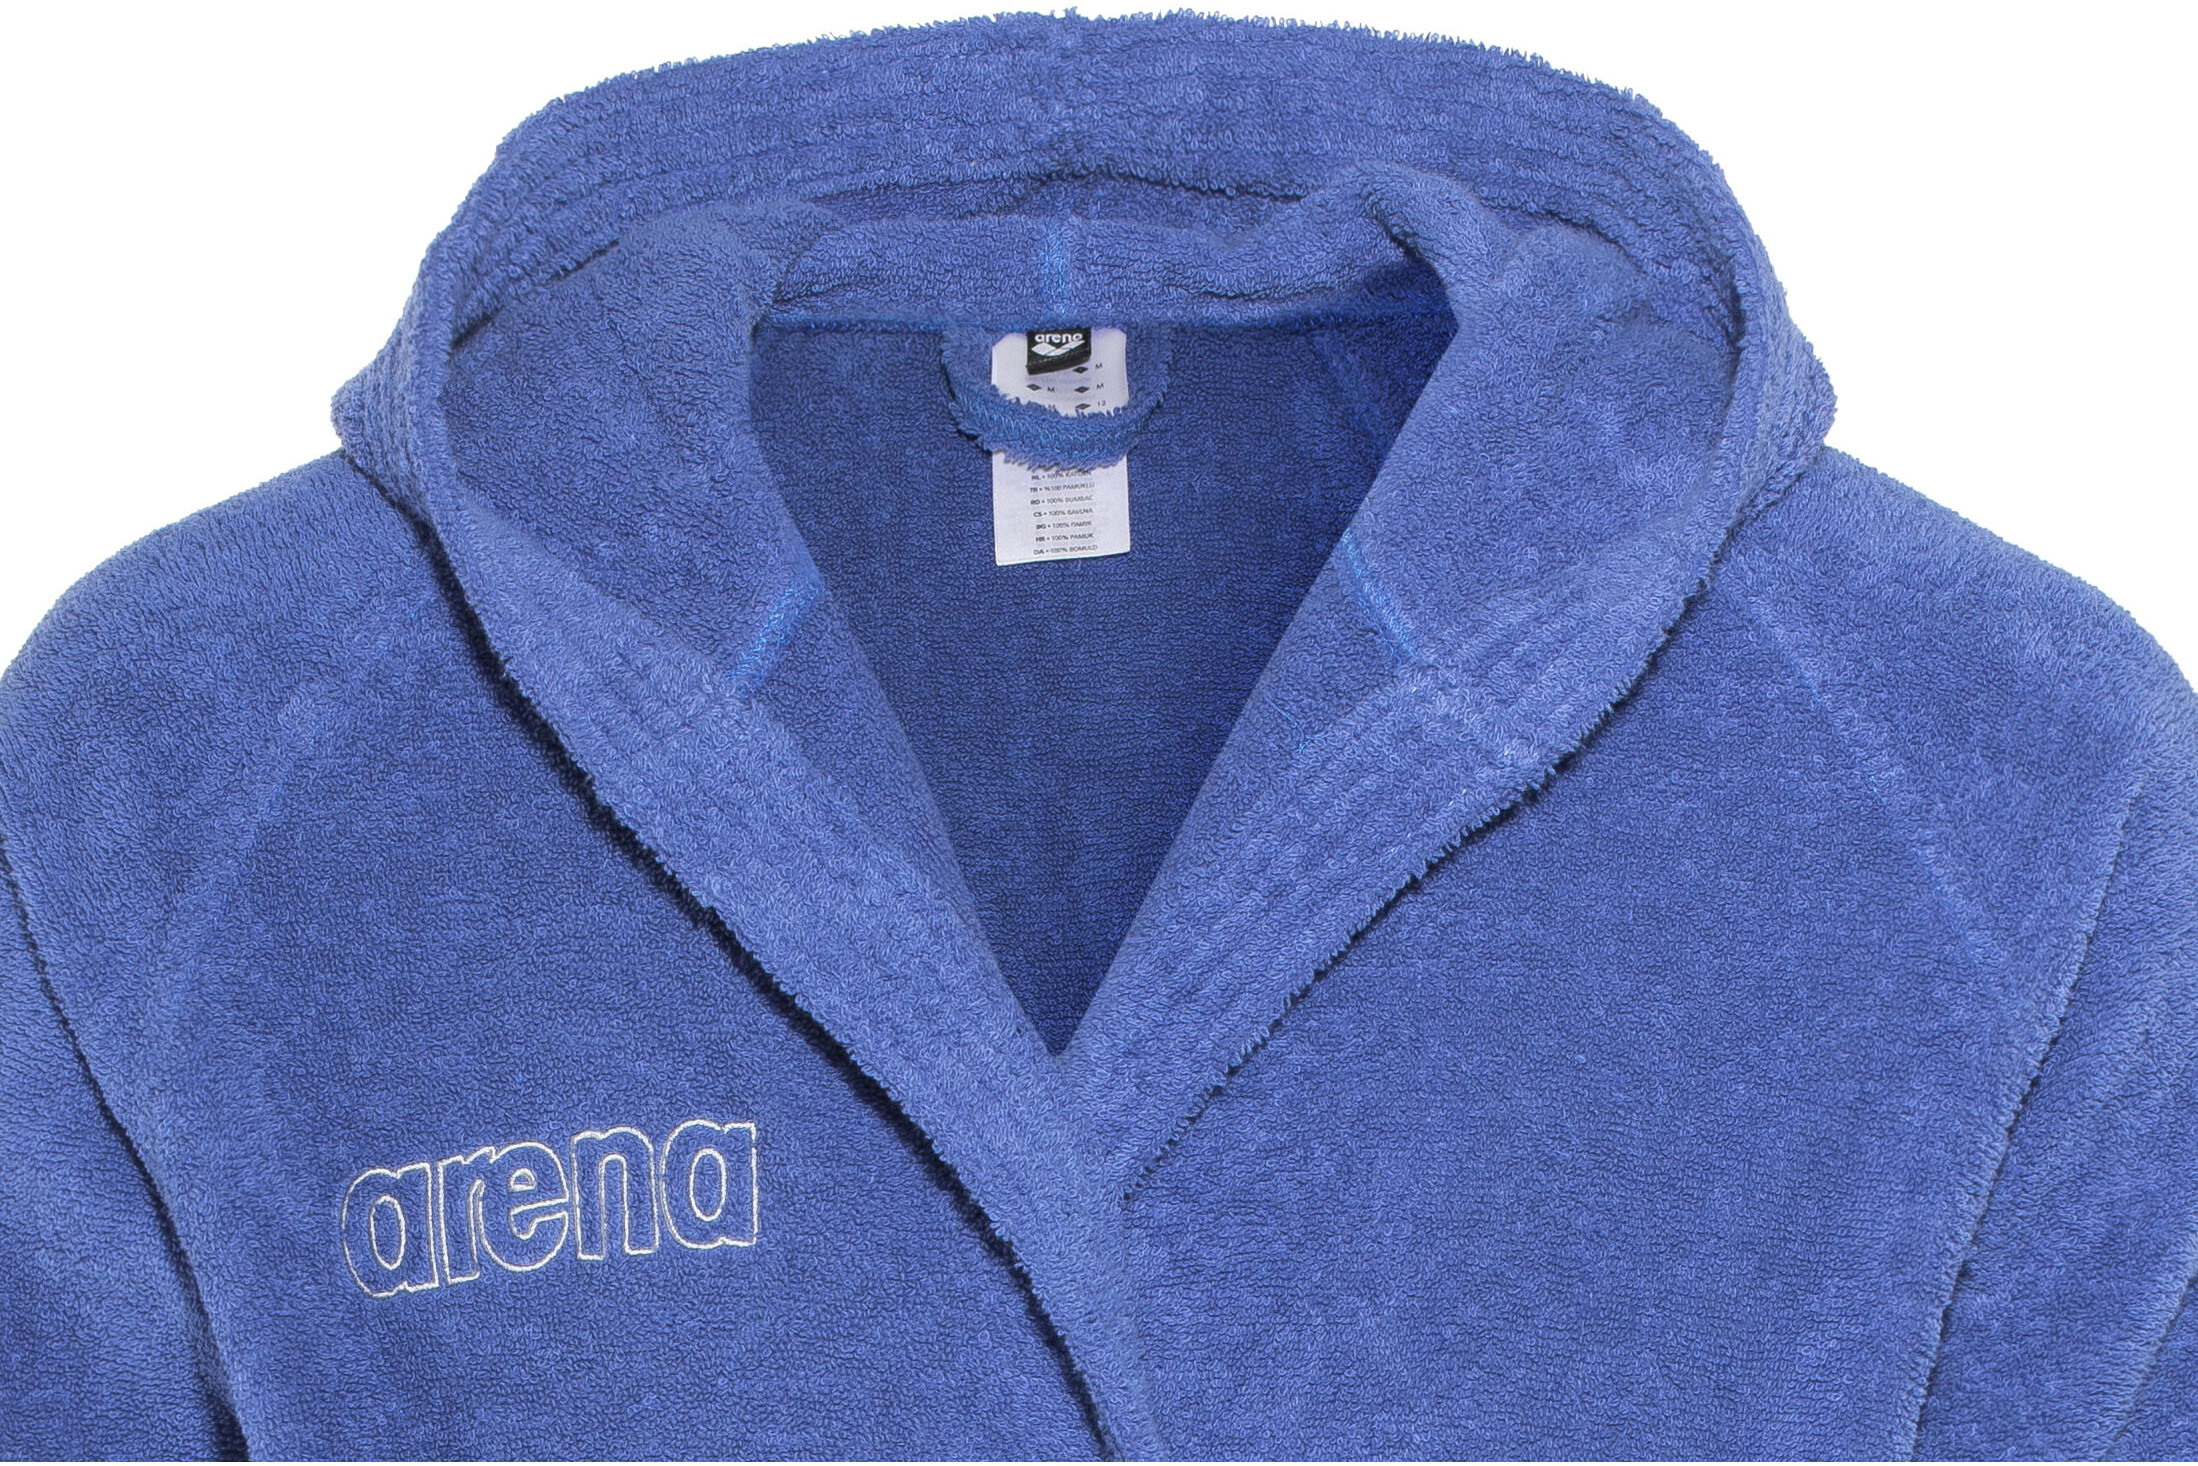 29b482be19 arena Zodiaco Bathrobe blue at Bikester.co.uk